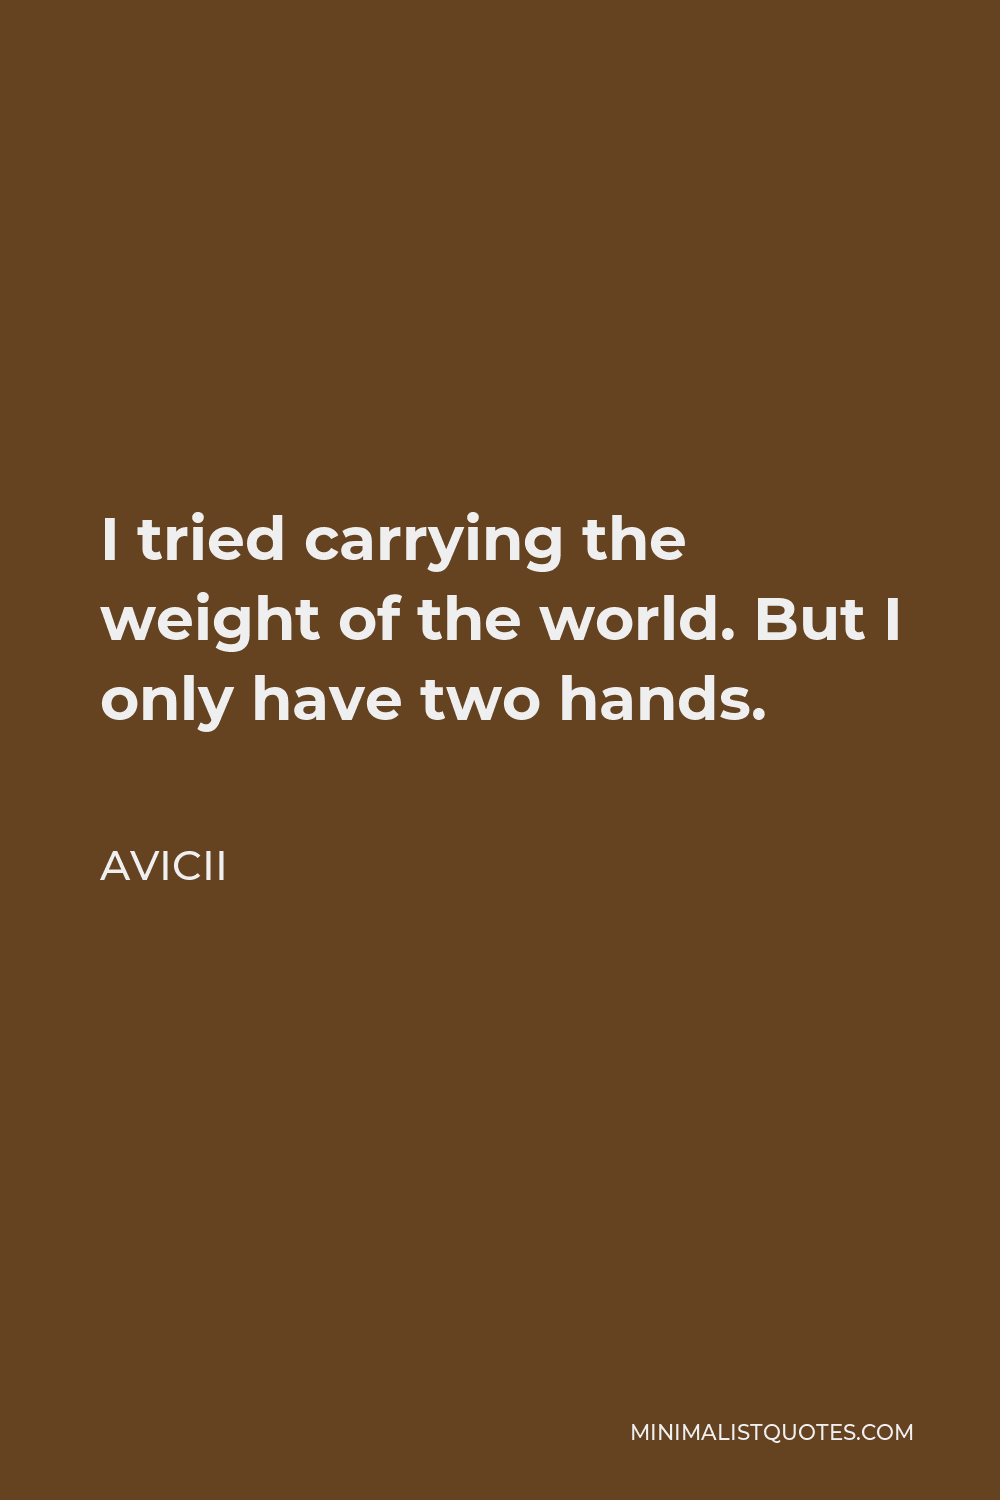 Avicii Quote - I tried carrying the weight of the world. But I only have two hands.